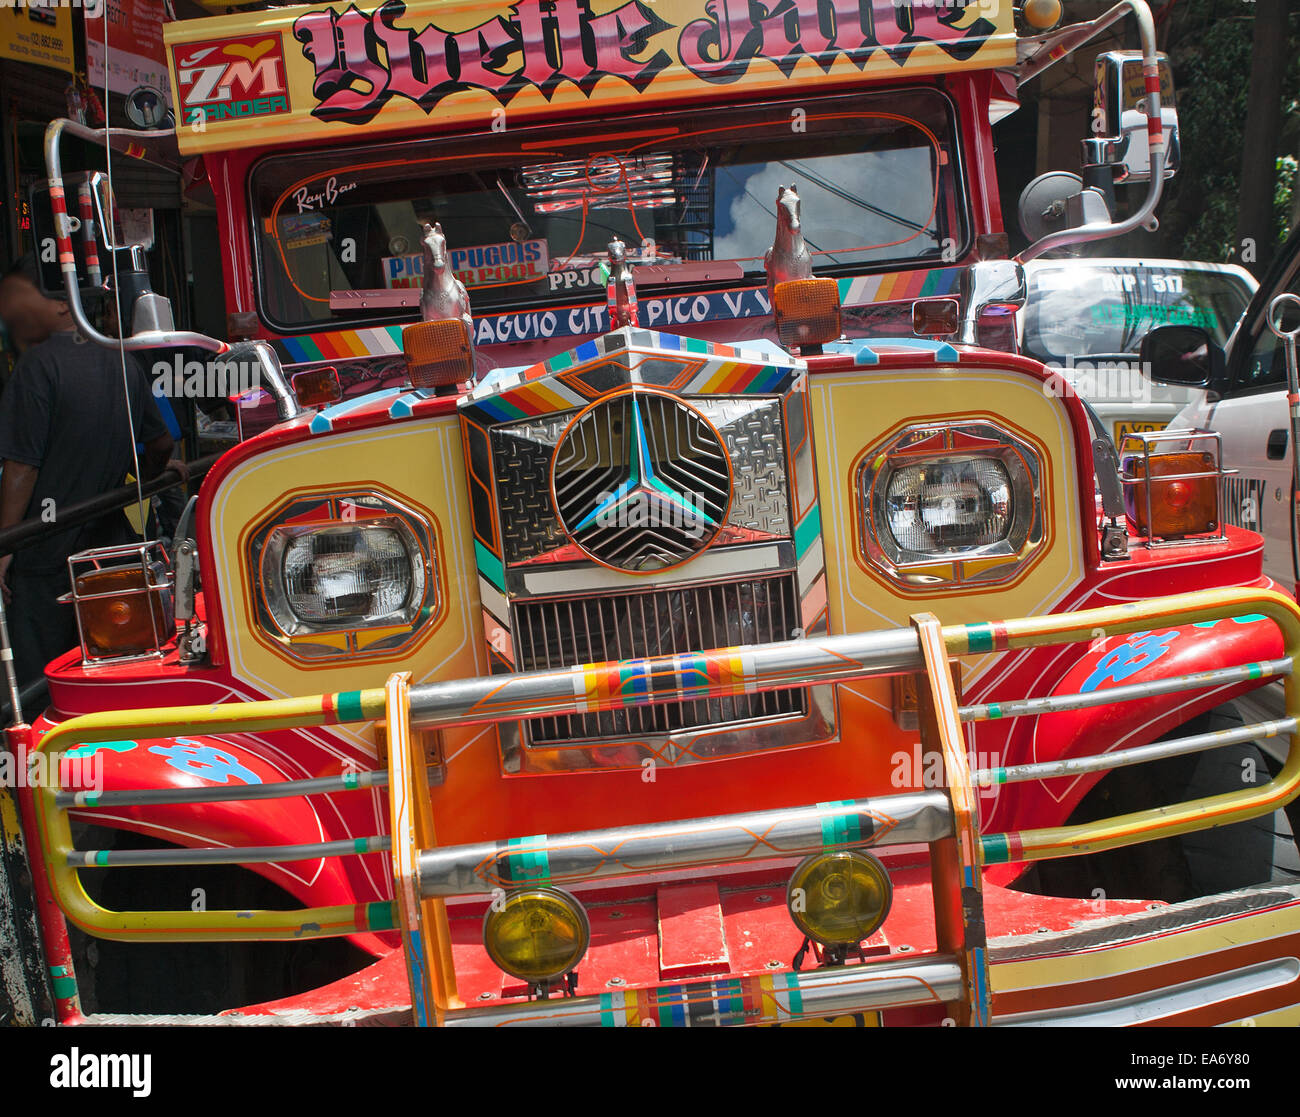 Front end of a Jeepney, a form of public transportation based on old USA military jeeps. Common throughout the Philippines. - Stock Image